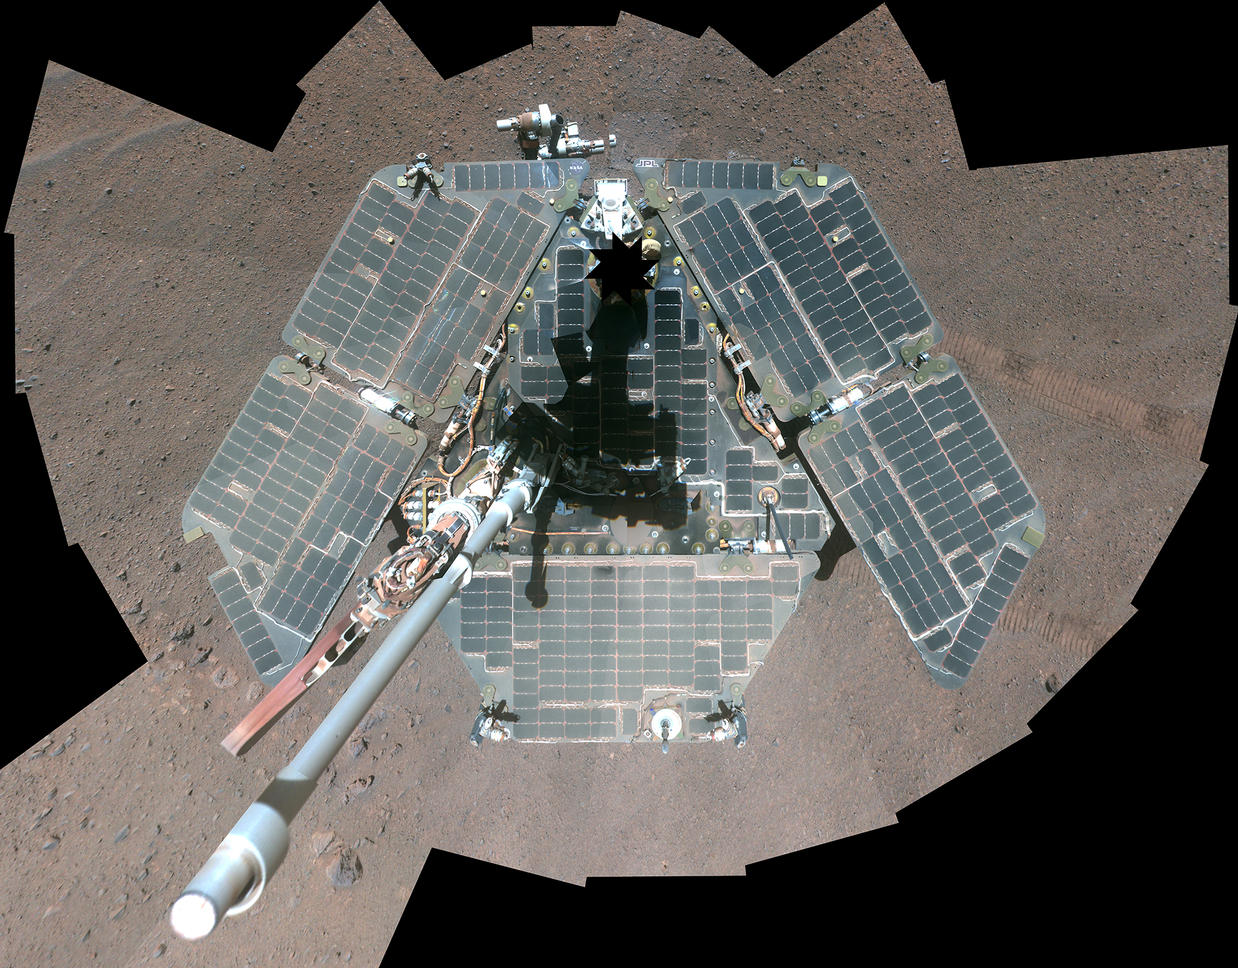 A self-portrait from overhead shows a view of the rover solar panels, which appear grayish-green and wiped clean of dust.